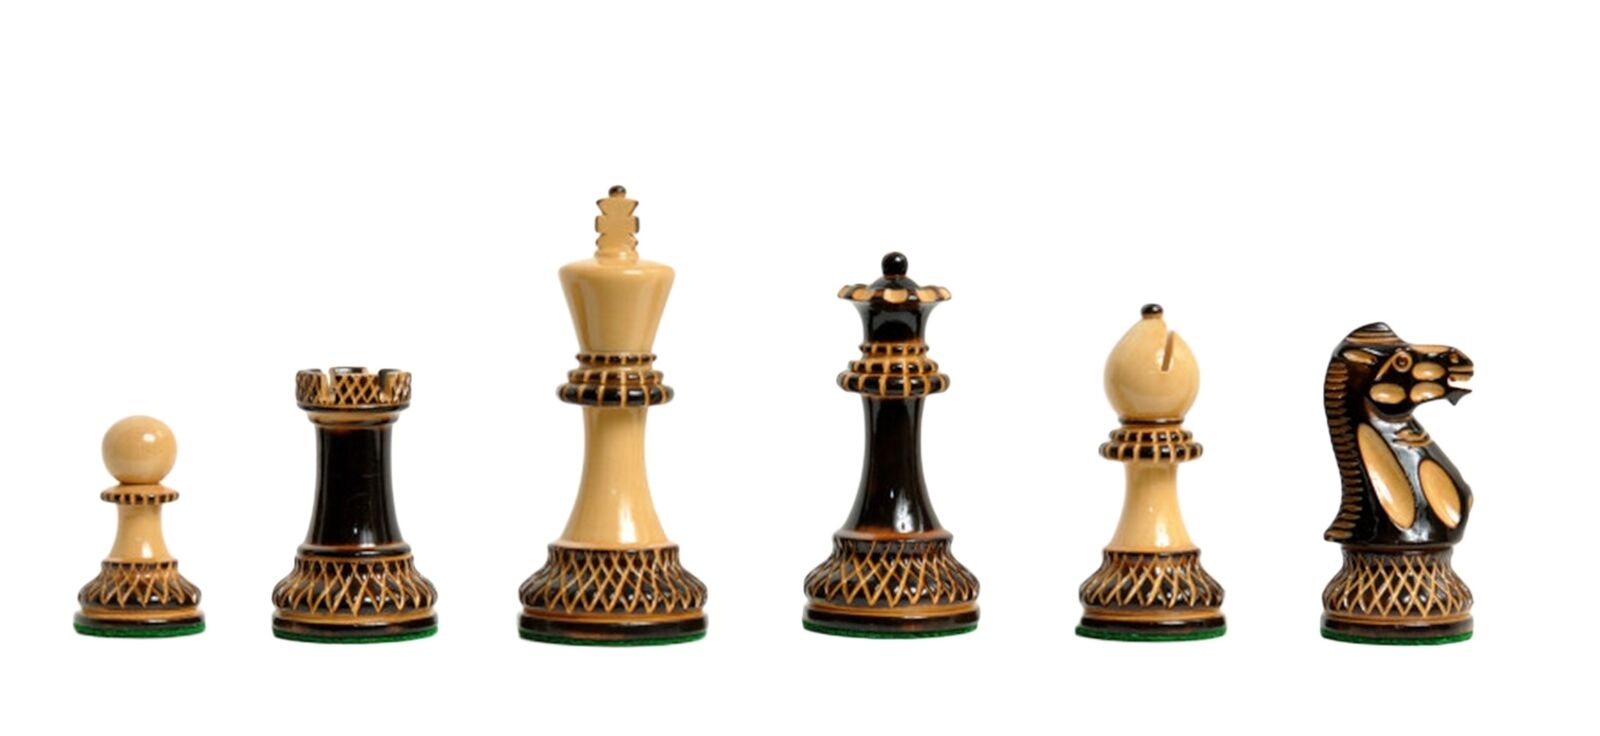 The Burnt Grandmaster II Chess Set - 4.0  King Burnt Boxwood and Natural Boxwood